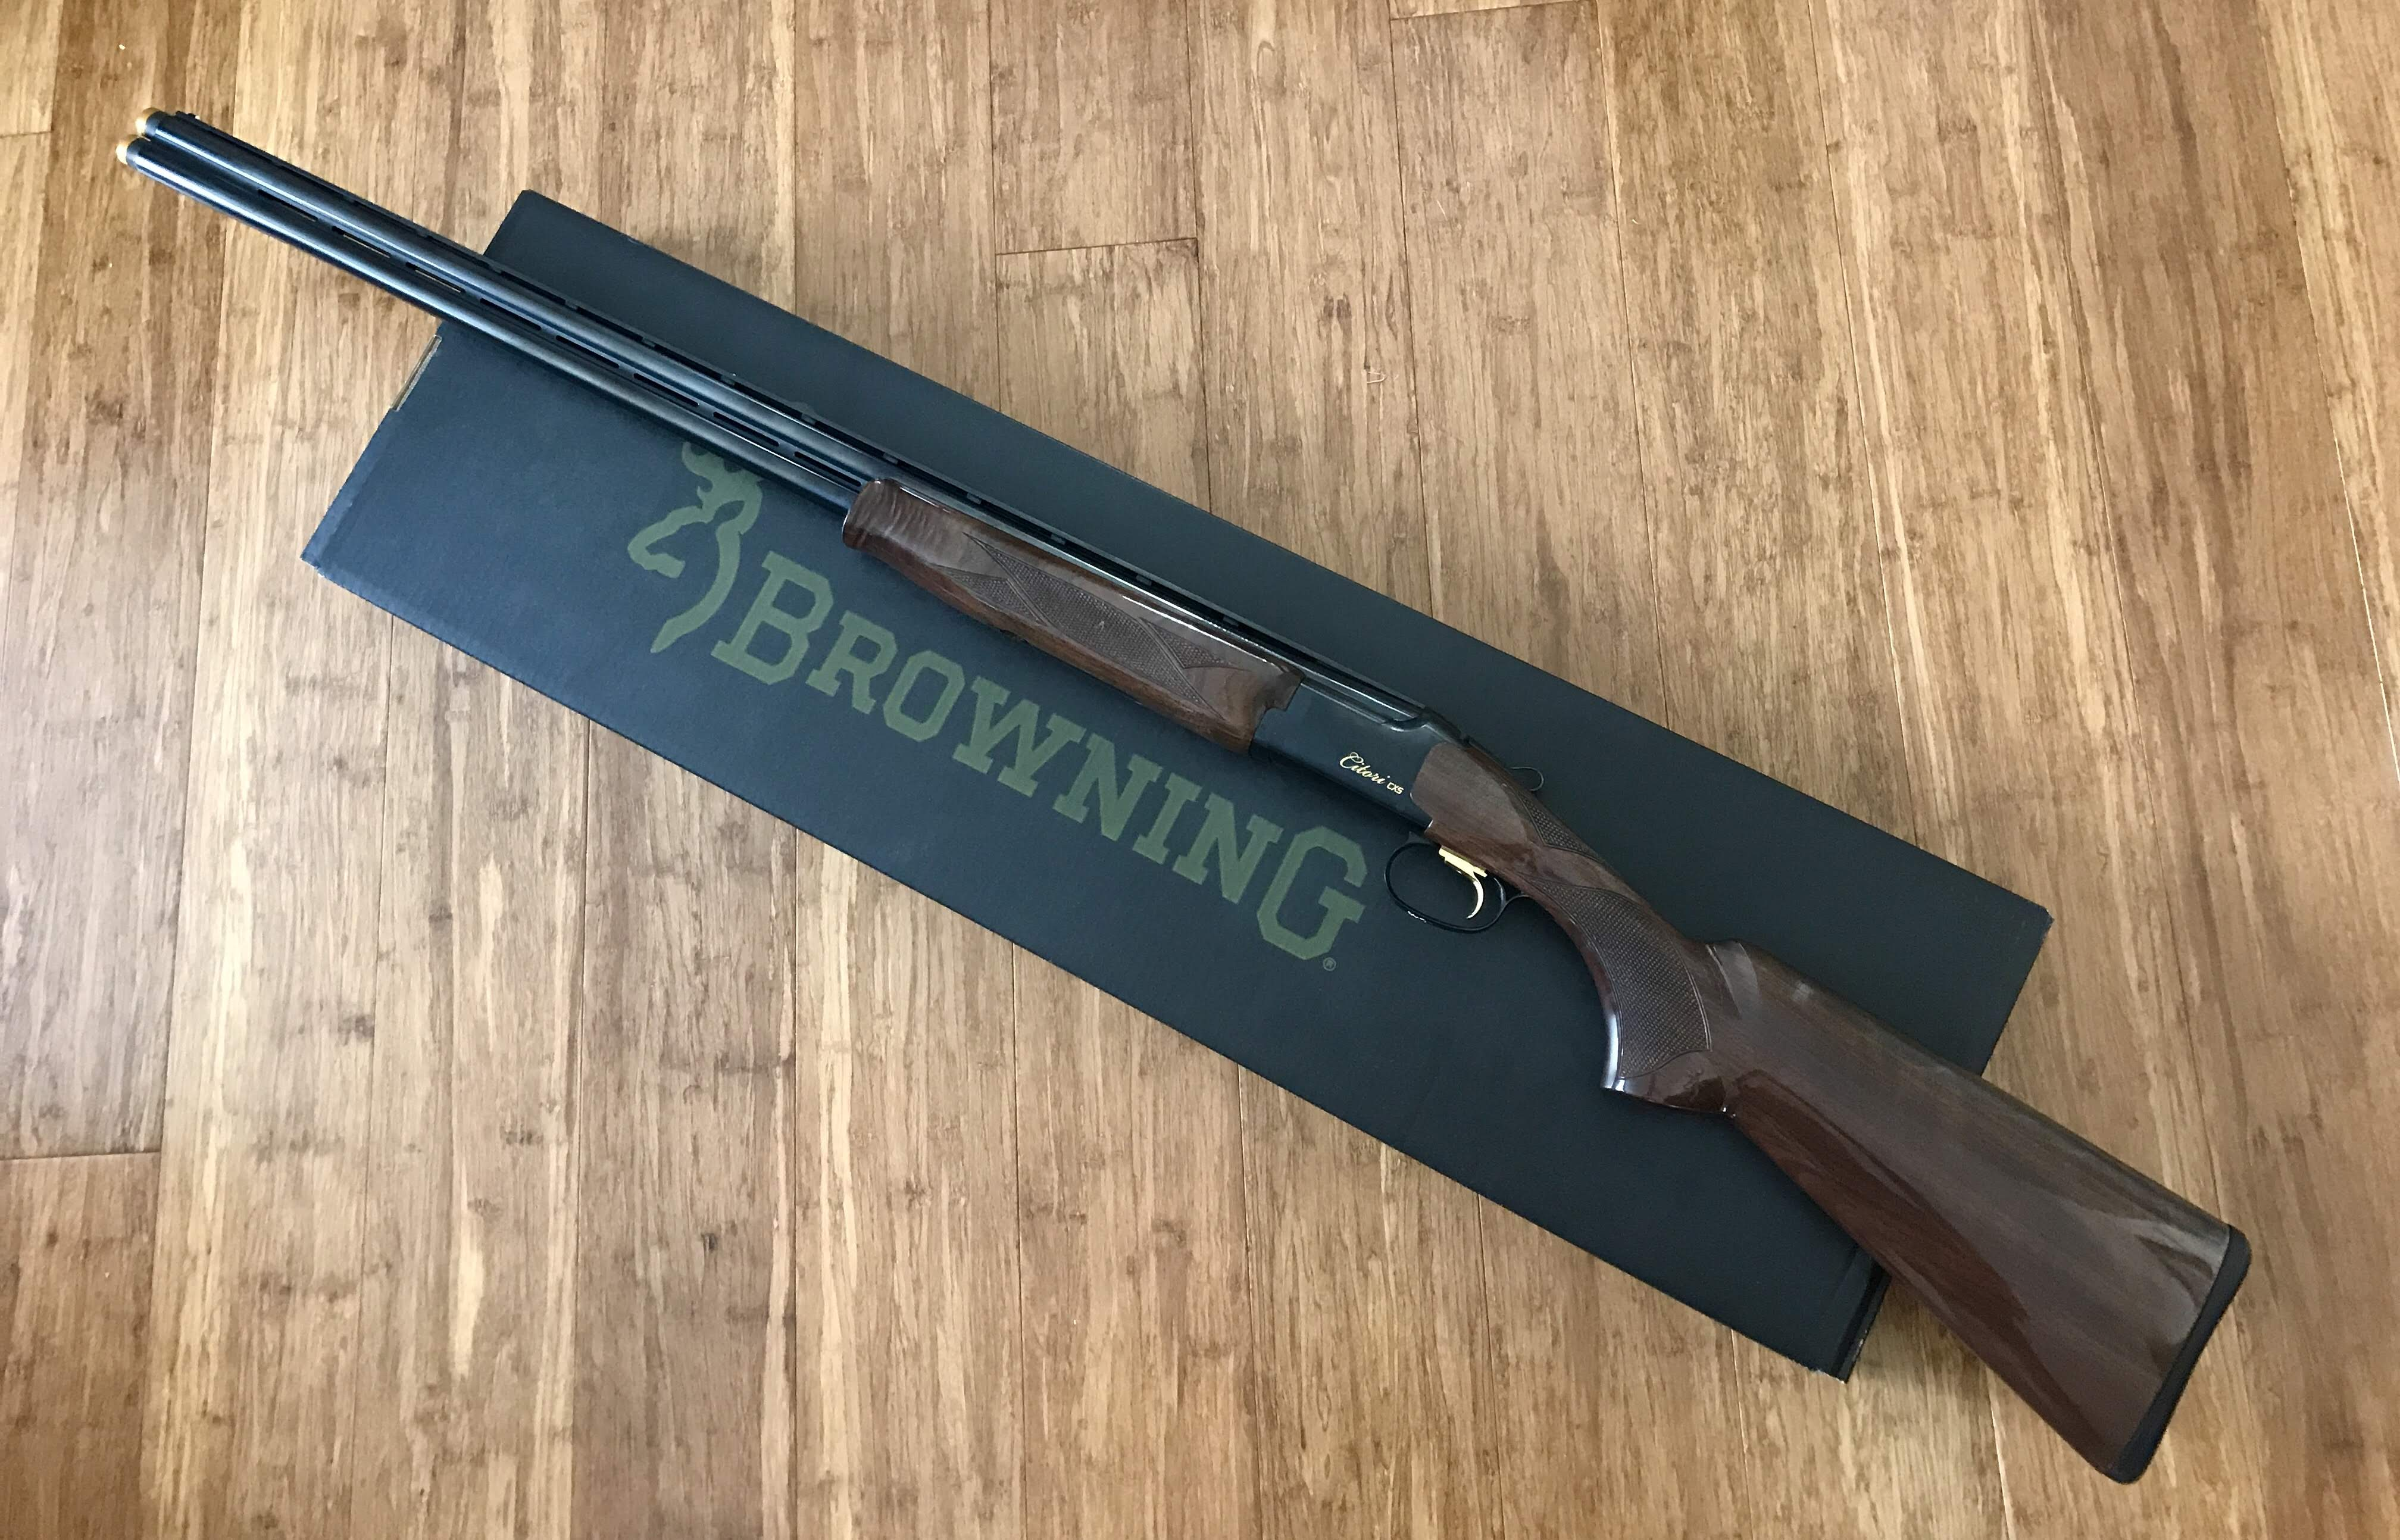 Best 20ga in your opinion? | Page 3 | Trap Shooters Forum